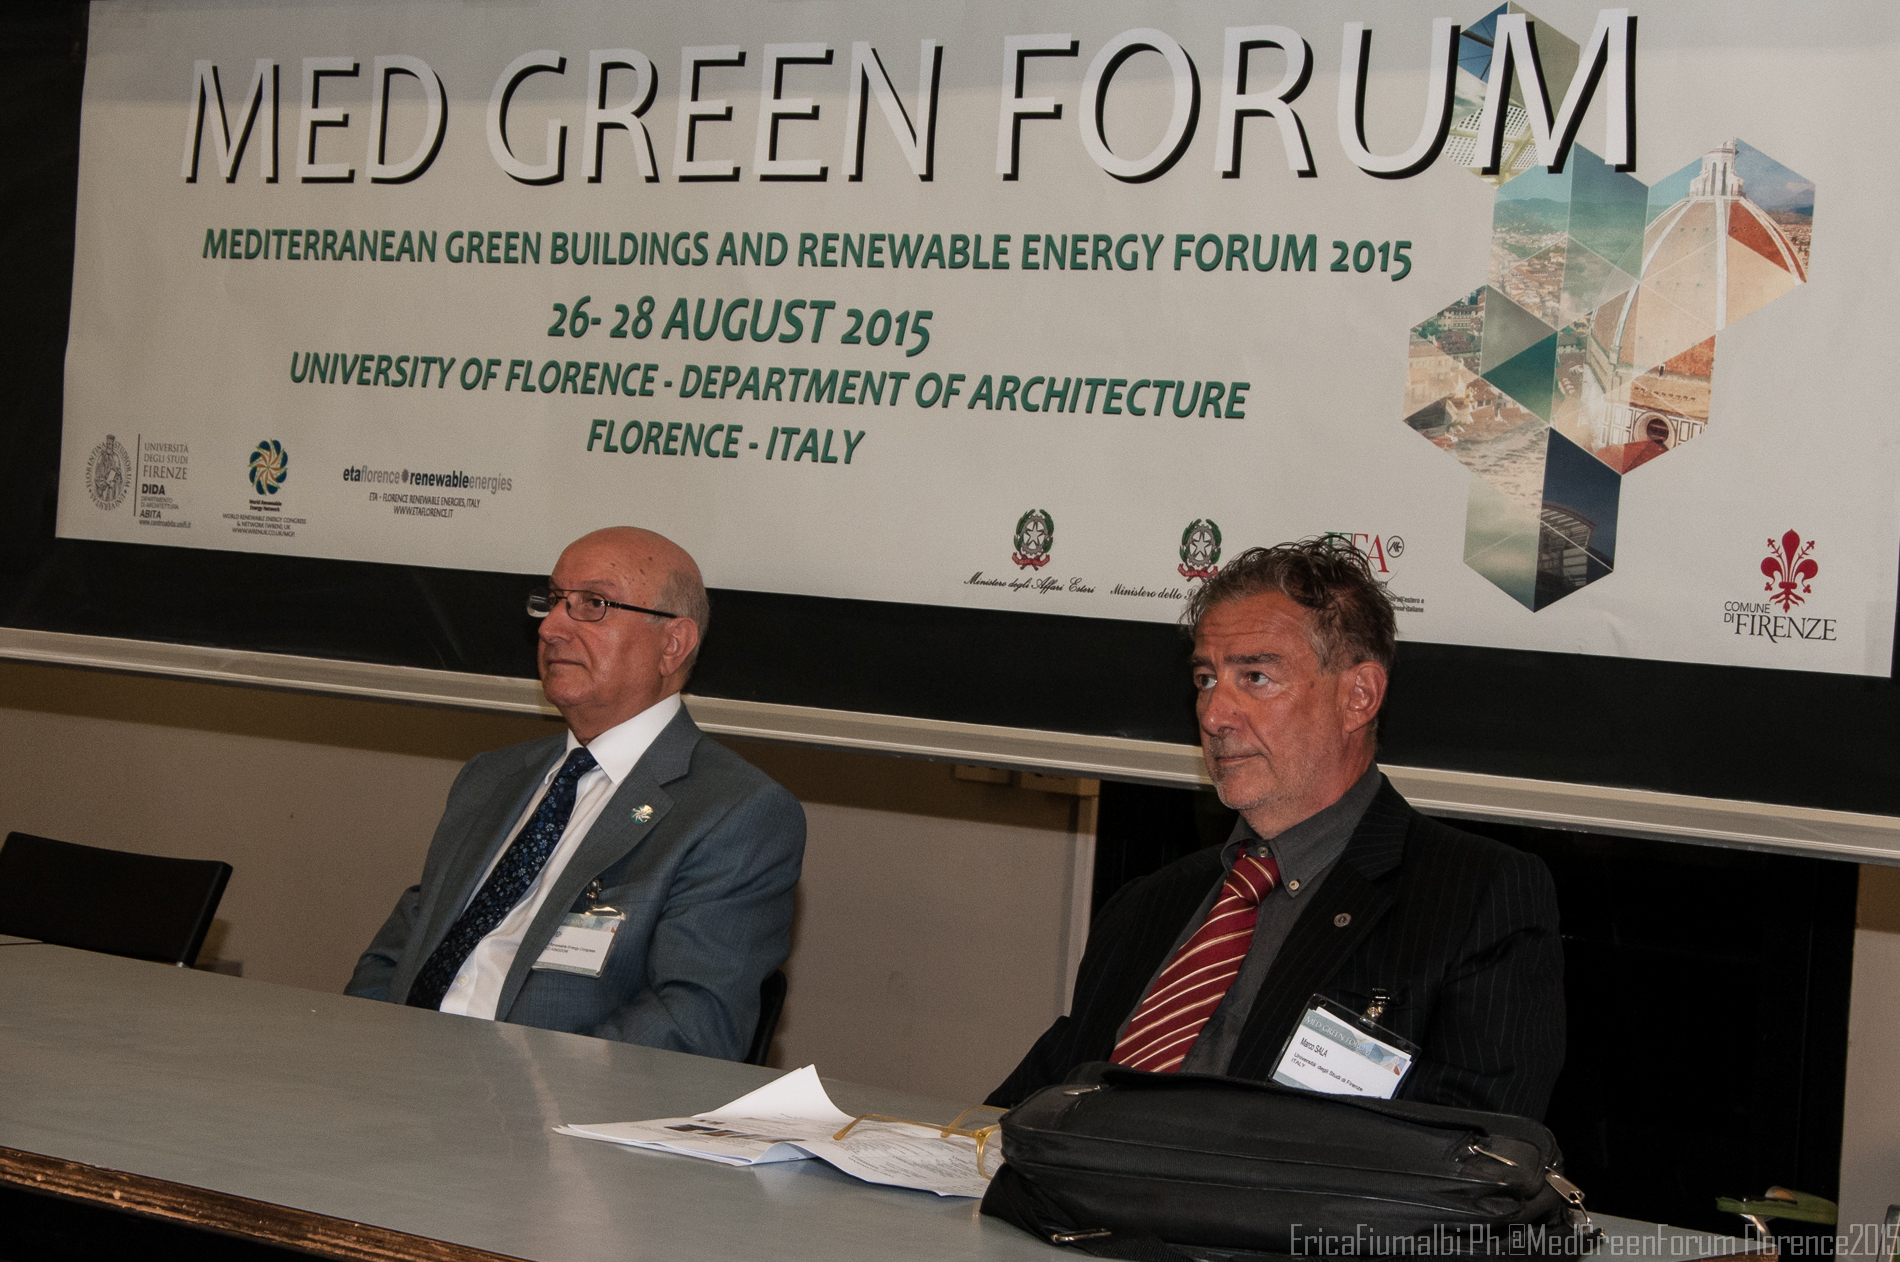 Prof. Ali Sayigh Chairman of Med Green Forum UK Prof.Marco Sala, Co-chair of Med Green Forum - Italy